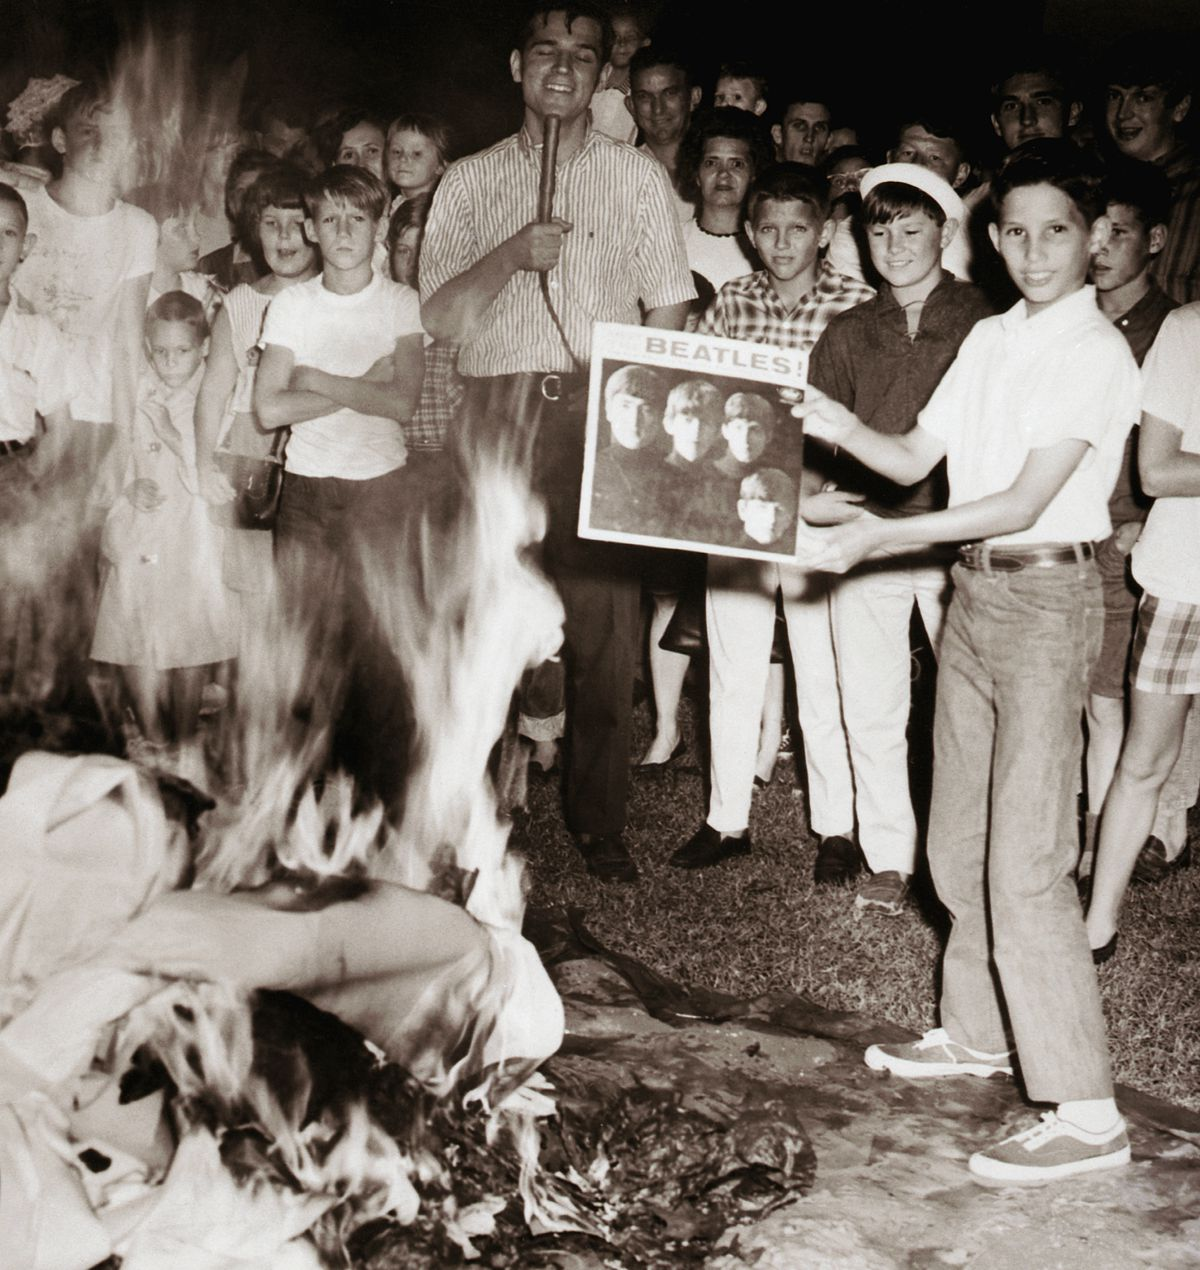 Teenagers Protest Against the Beatles